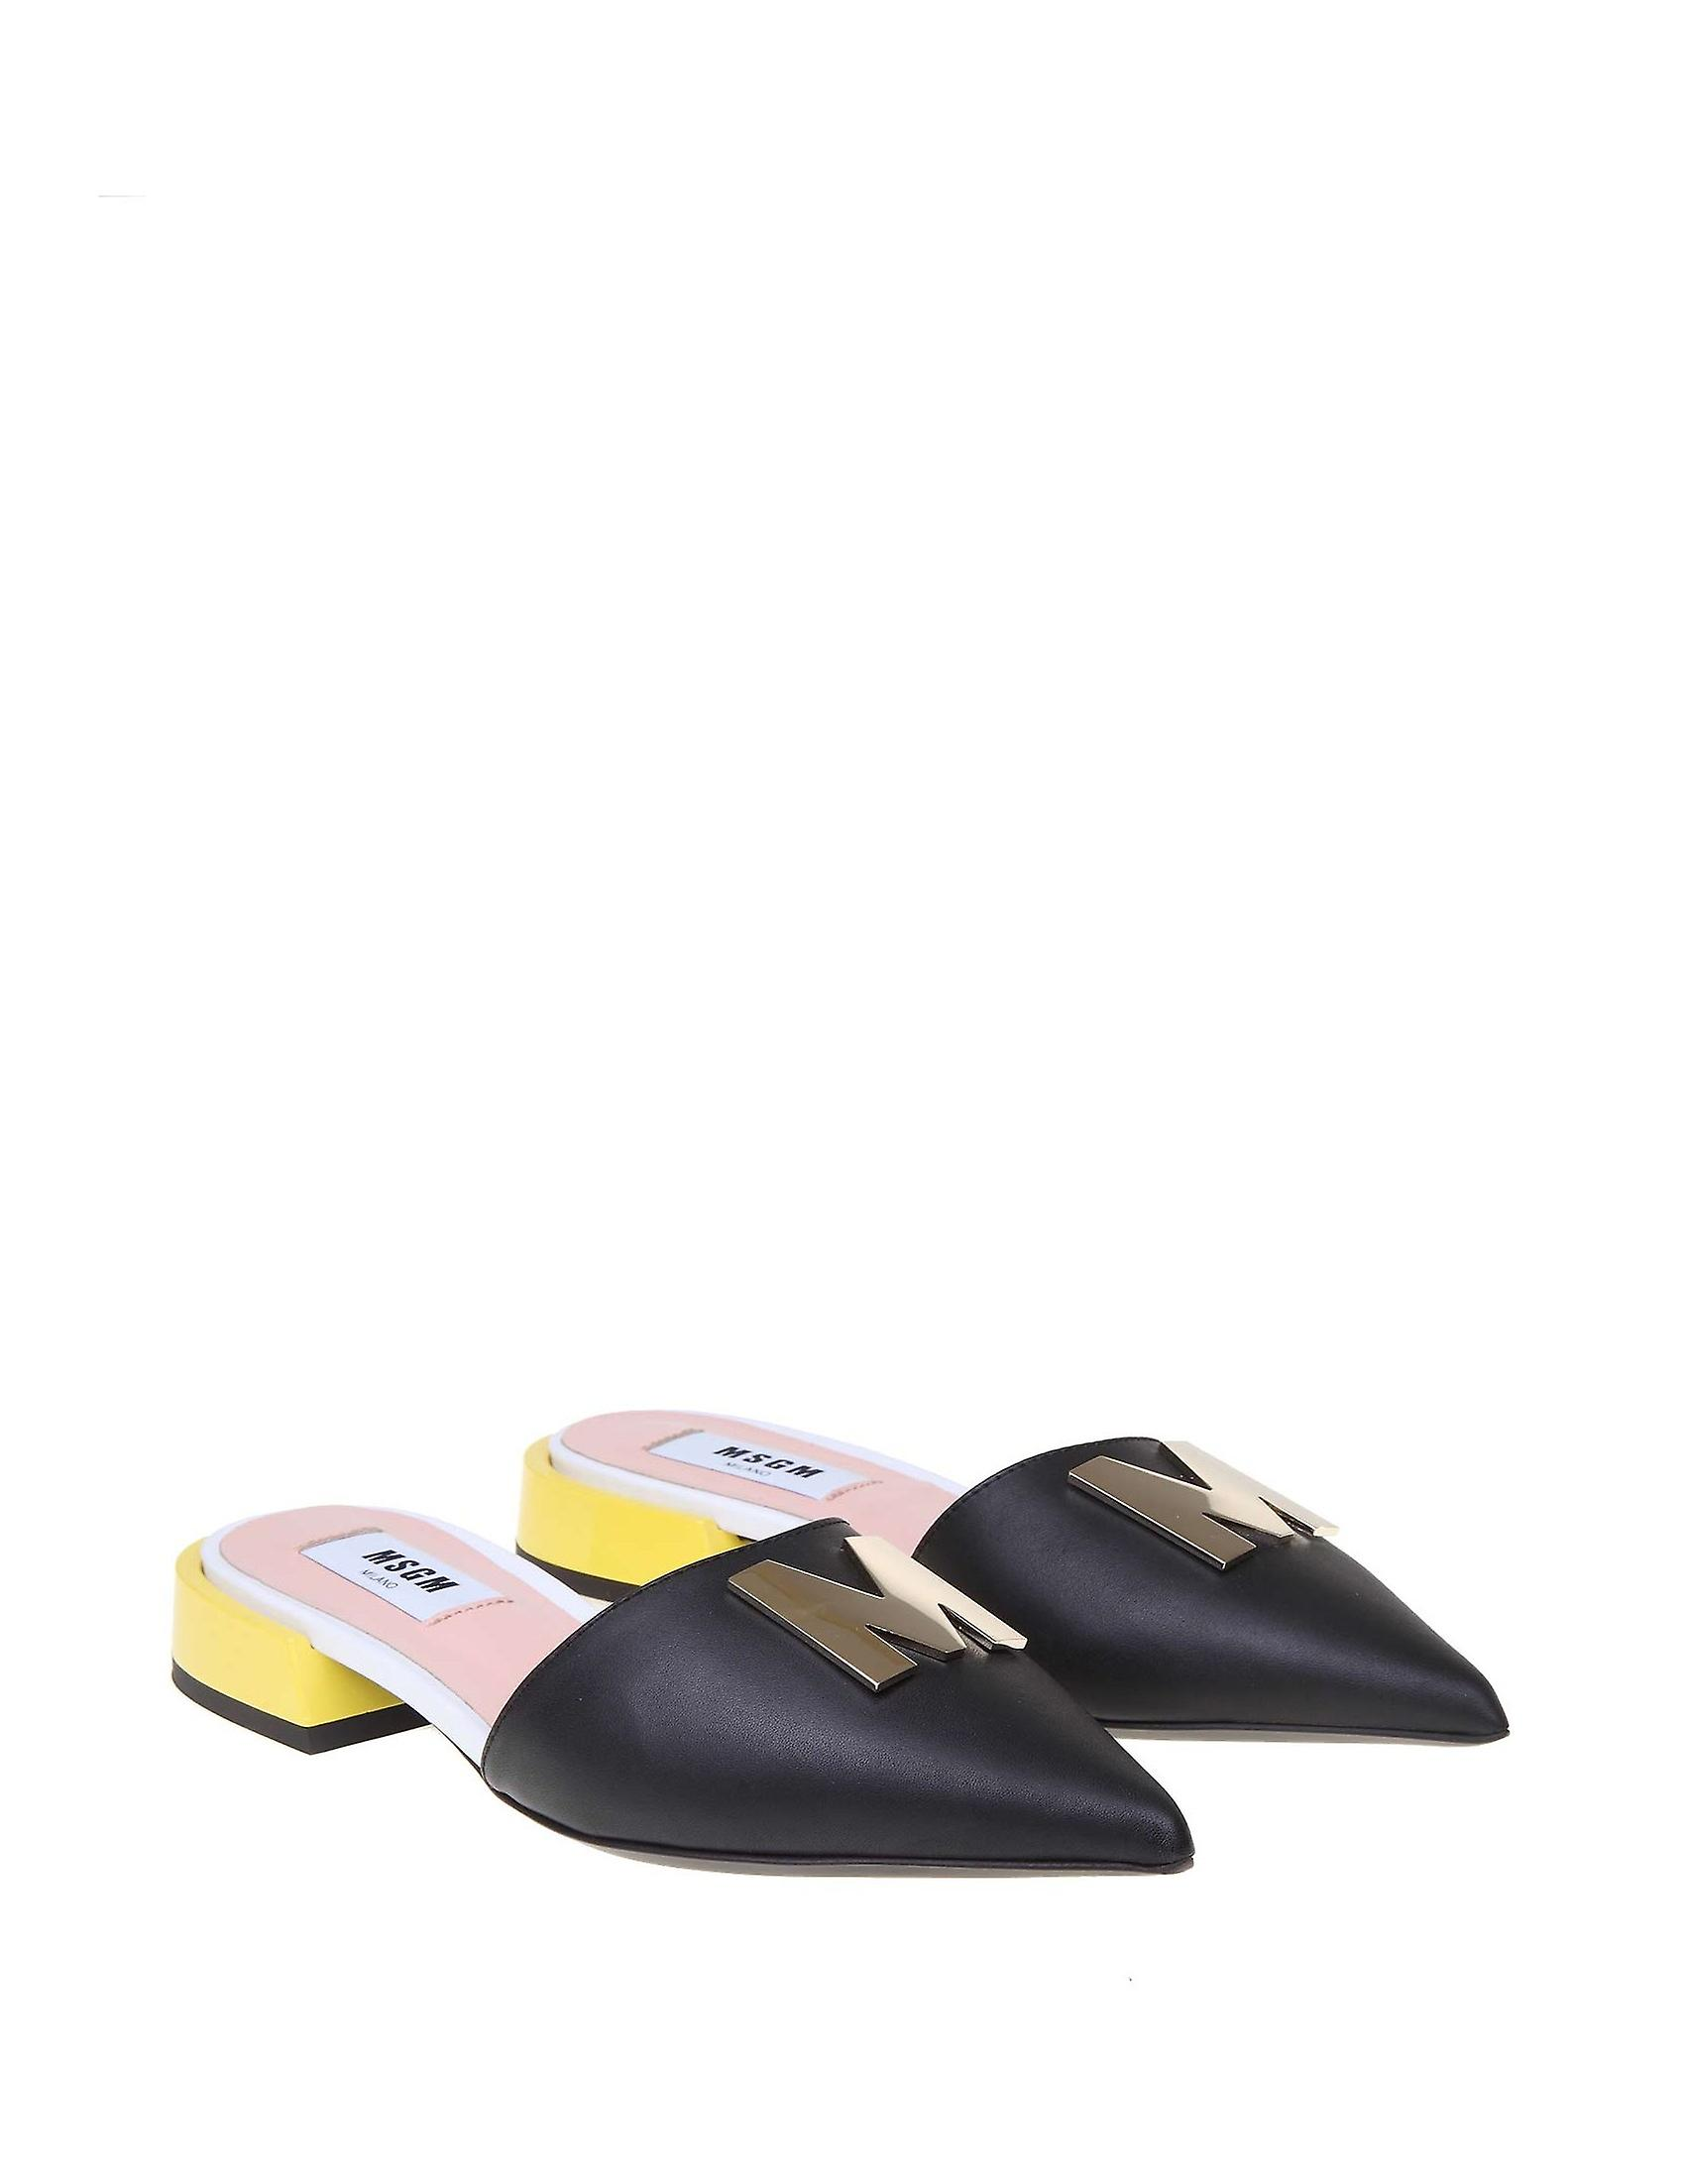 Msgm 2841mds330228199 Women's Black Leather Slippers